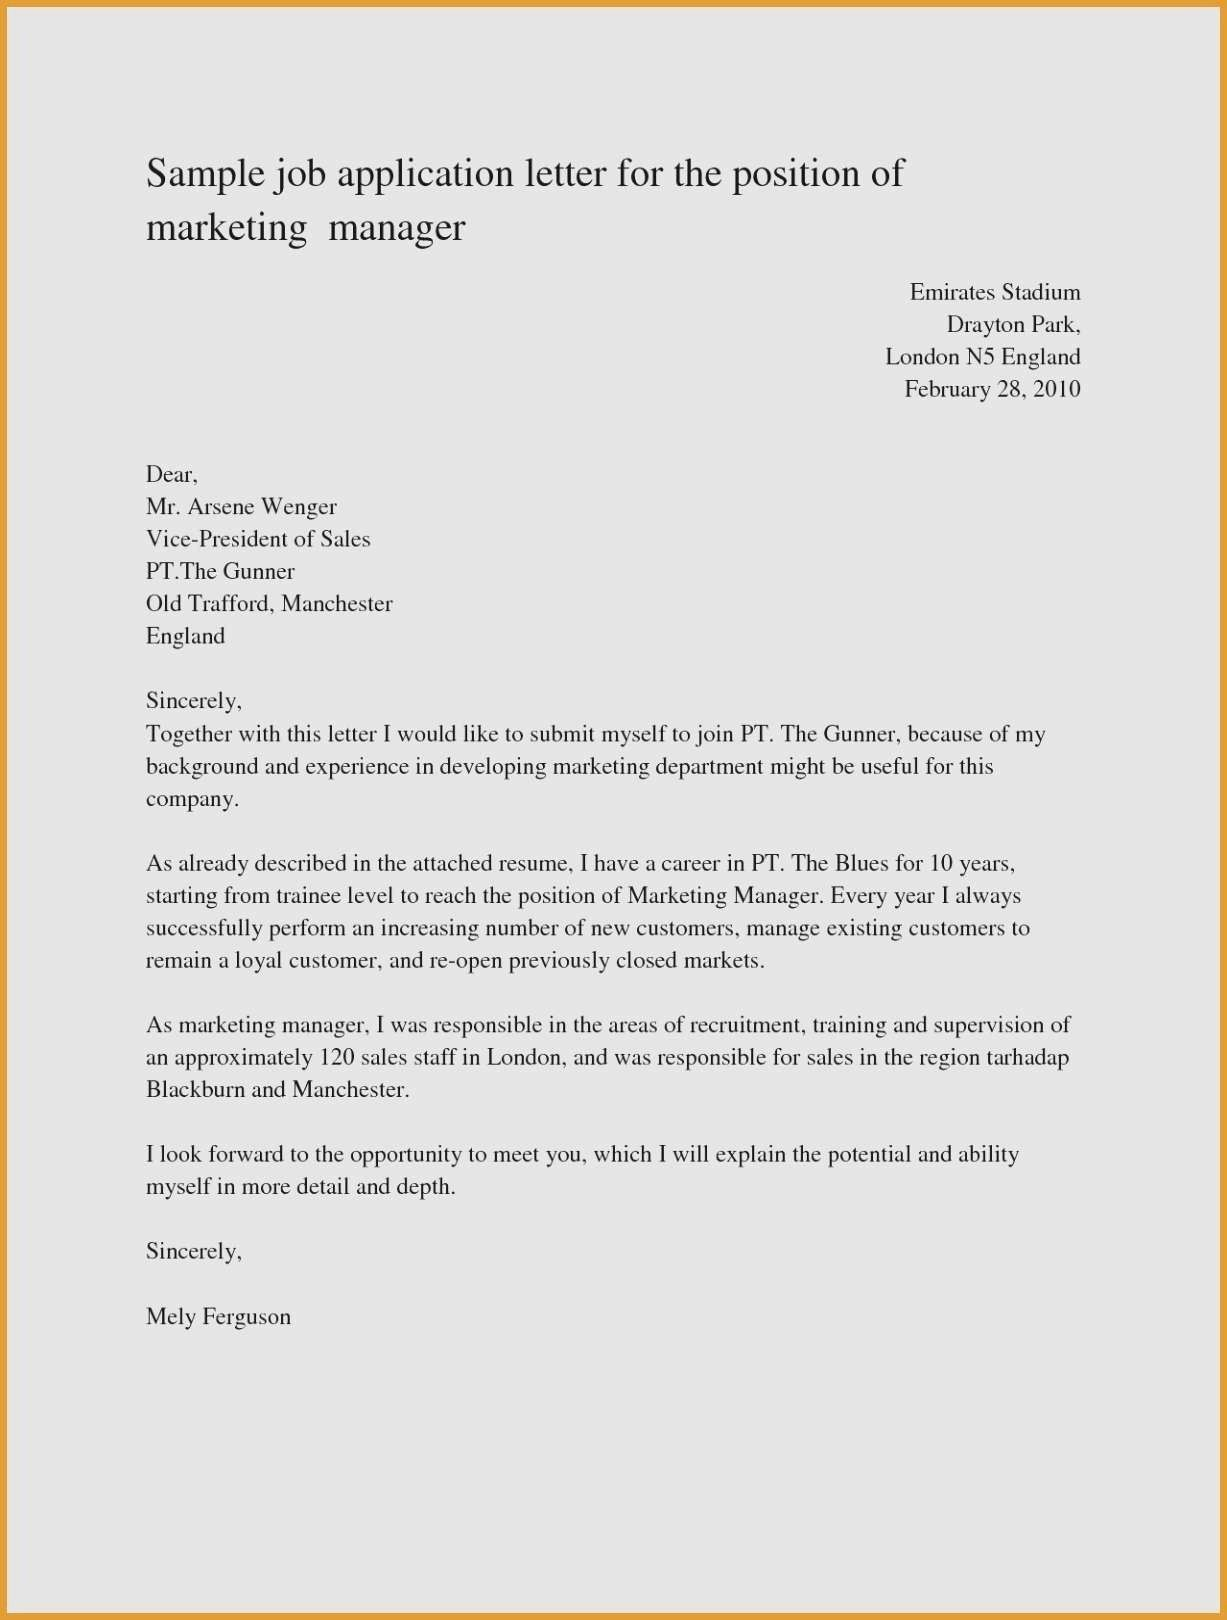 Unique Covering Letter Sample For Job Application With Images